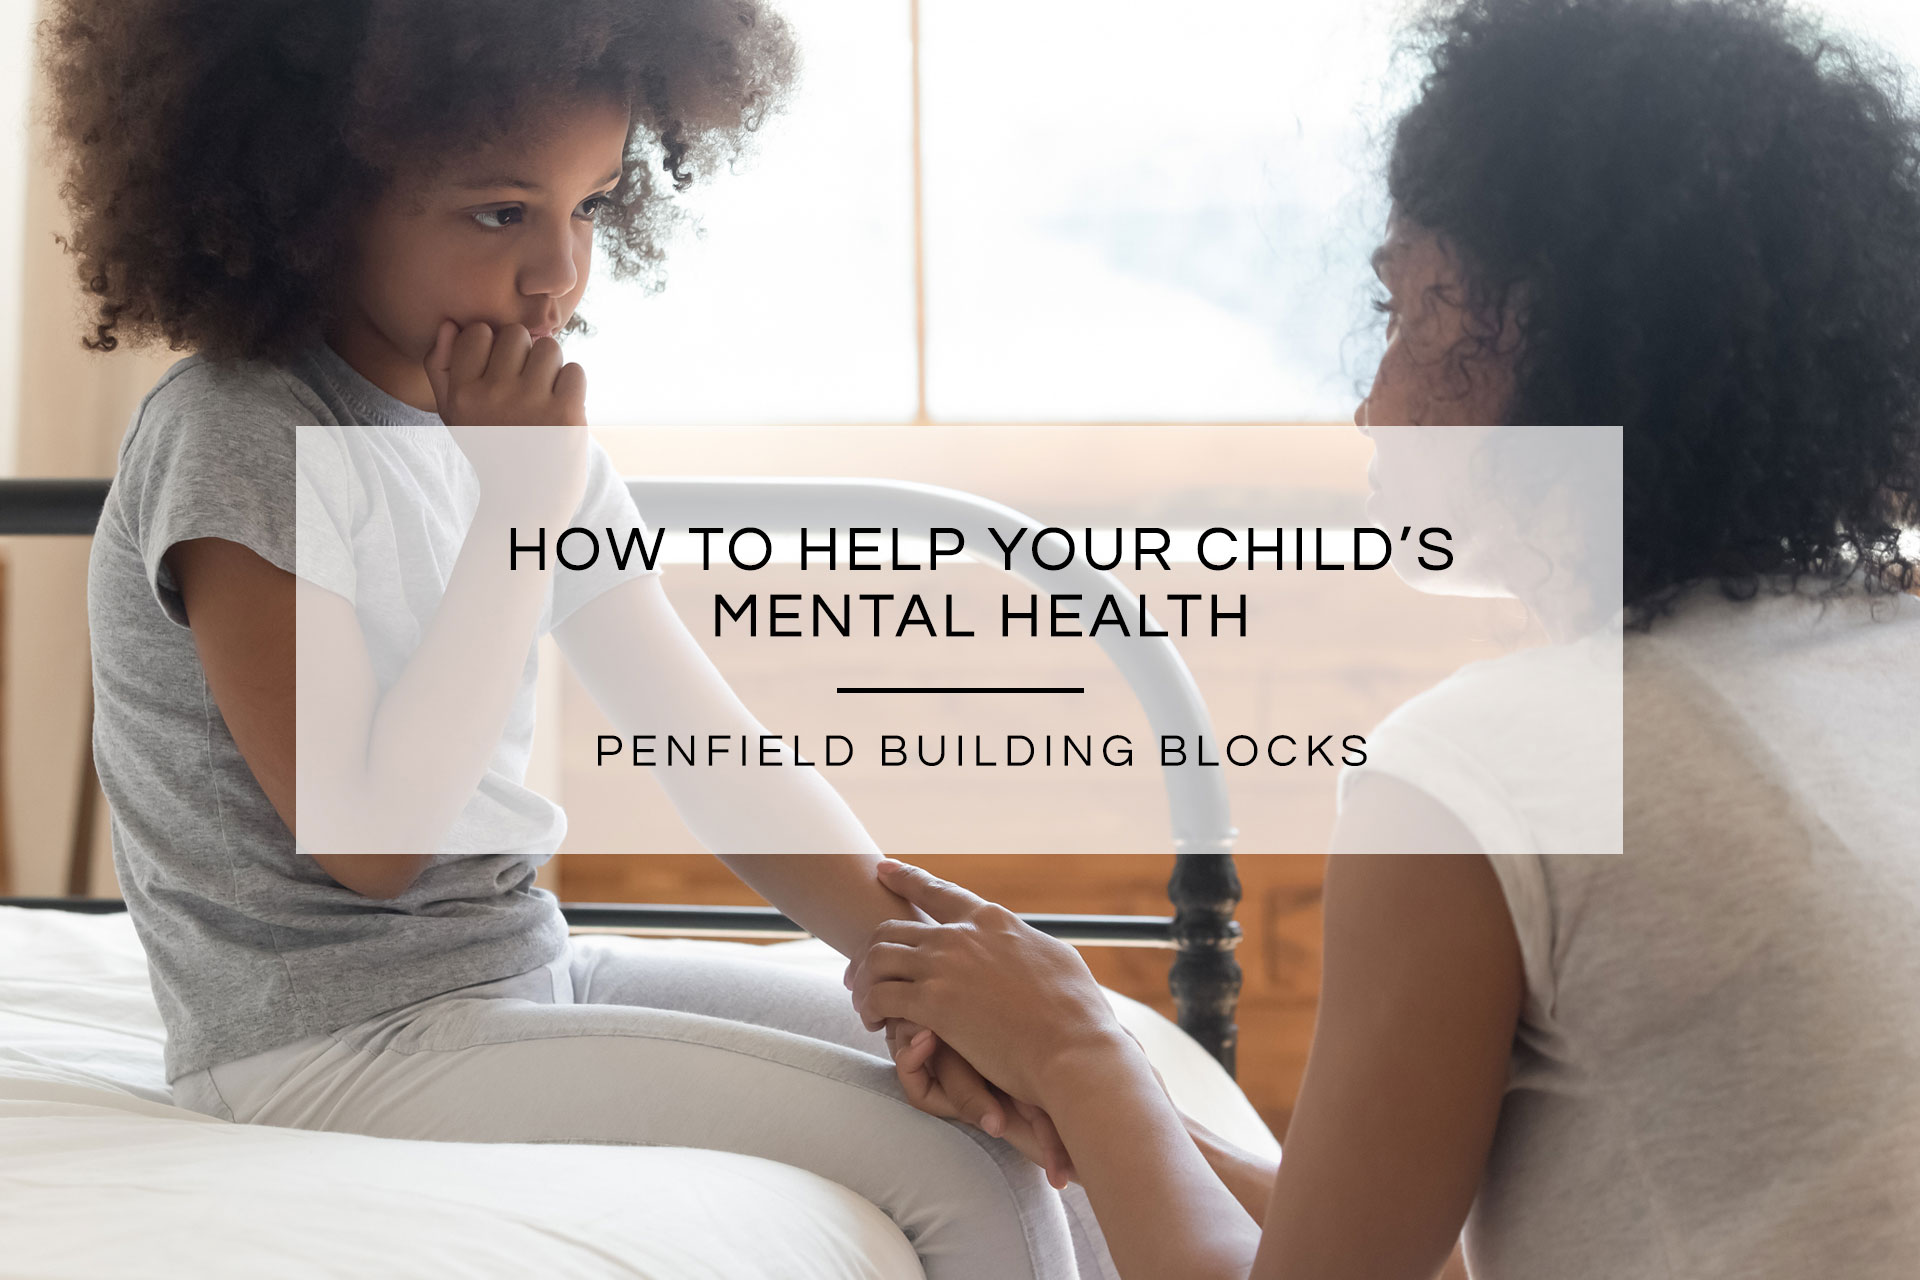 Help Your Child's Mental Health | Penfield Building Blocks